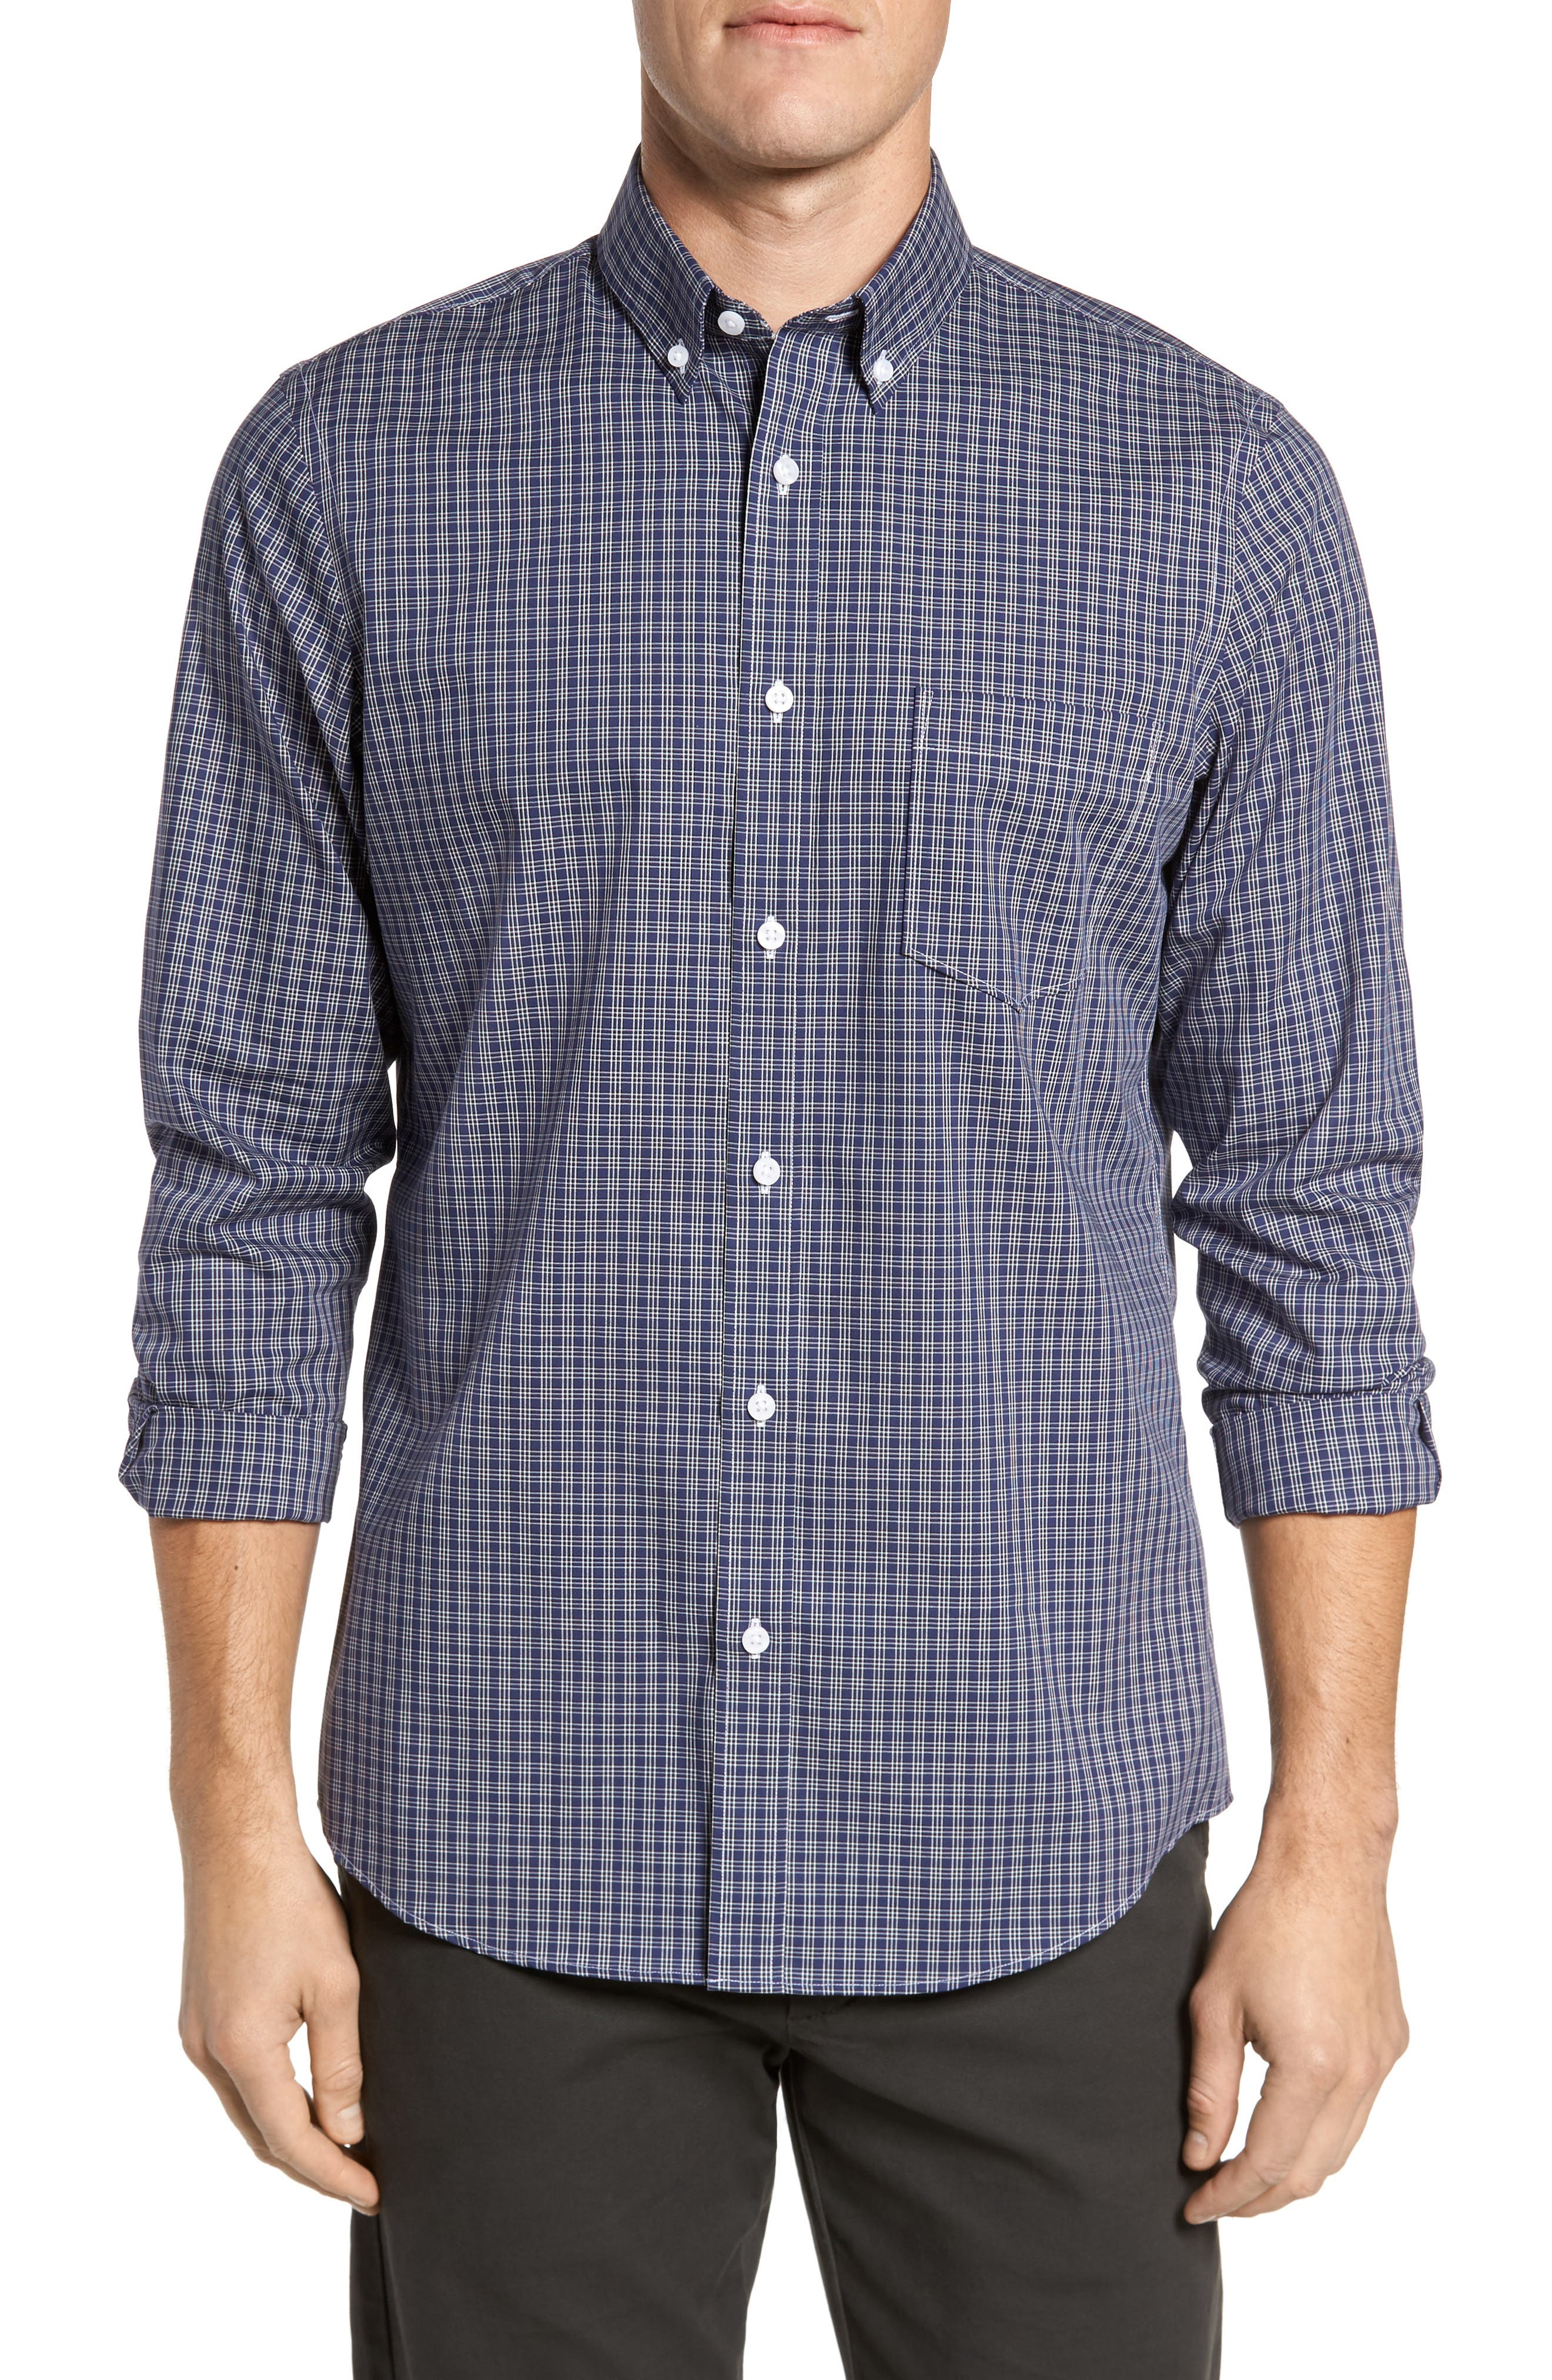 Nordstrom Men's Shop Regular Fit Non-Iron Mini Check Sport Shirt